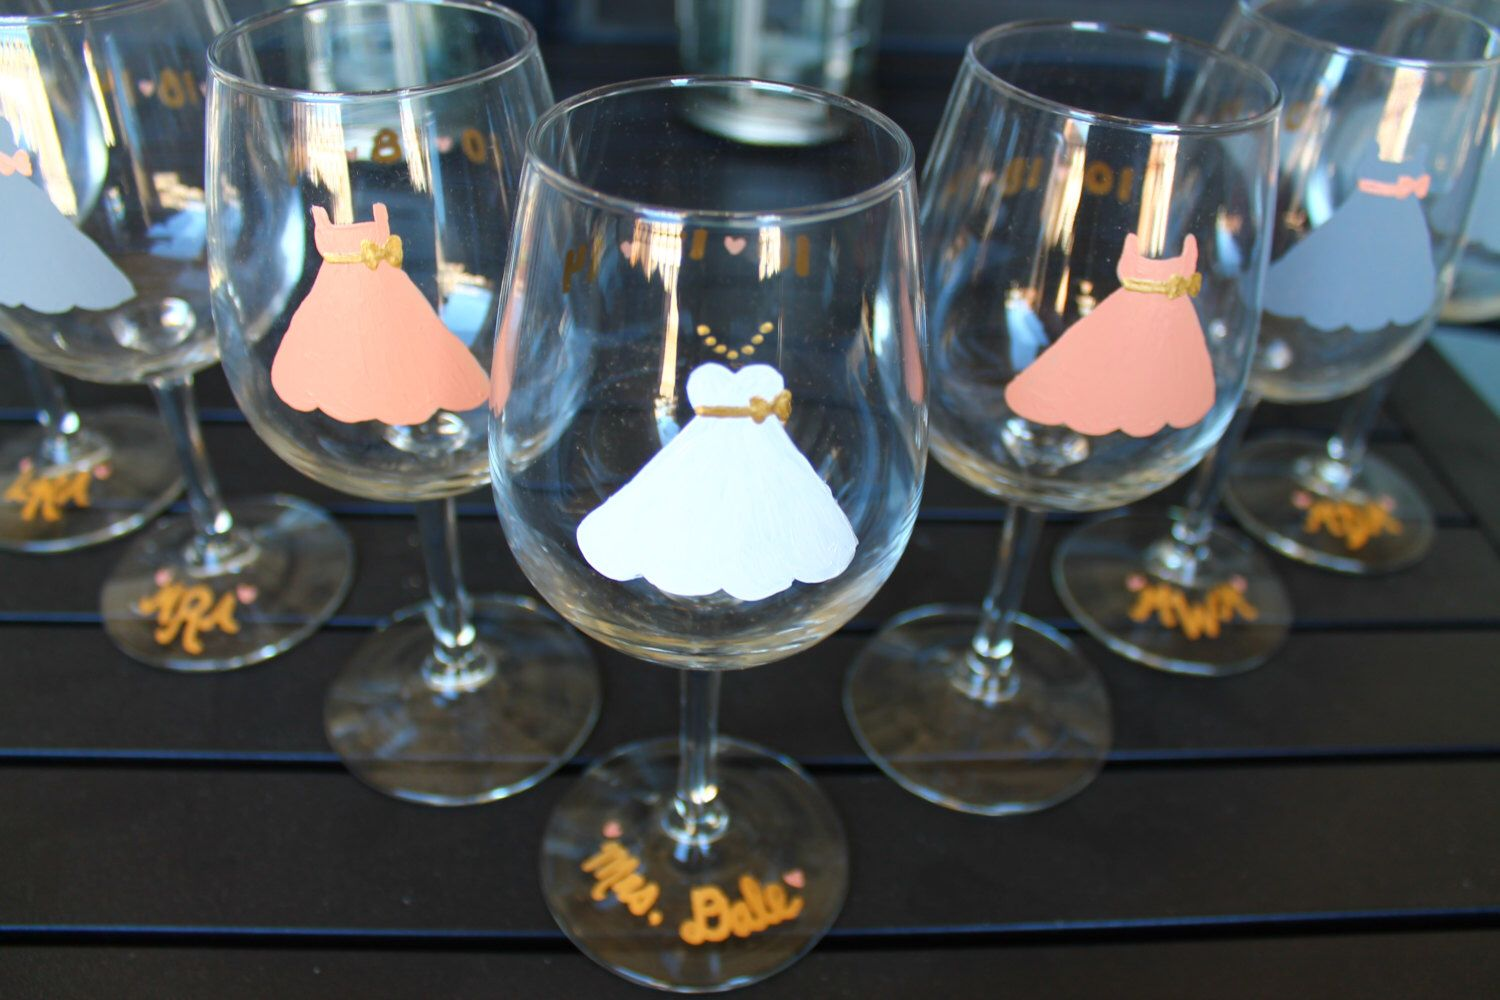 Hand-Painted Bridal Glasses by BetasBasics on Etsy https://www.etsy.com/listing/208647751/hand-painted-bridal-glasses